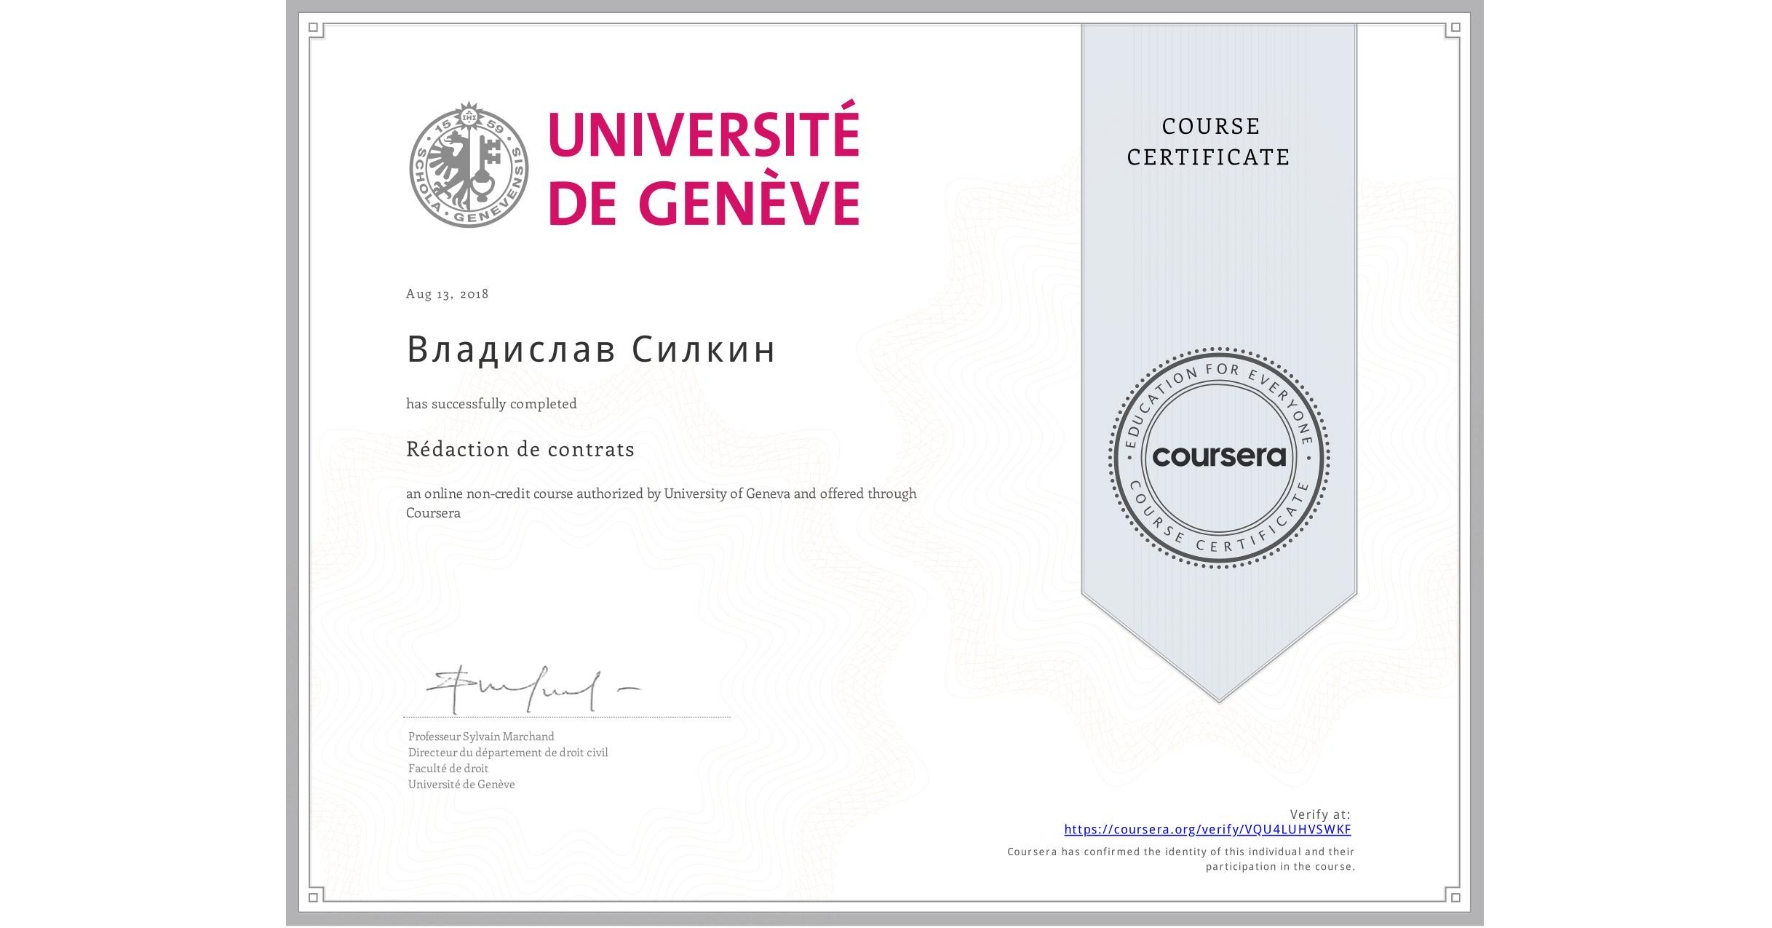 View certificate for Владислав Силкин, Rédaction de contrats, an online non-credit course authorized by University of Geneva and offered through Coursera